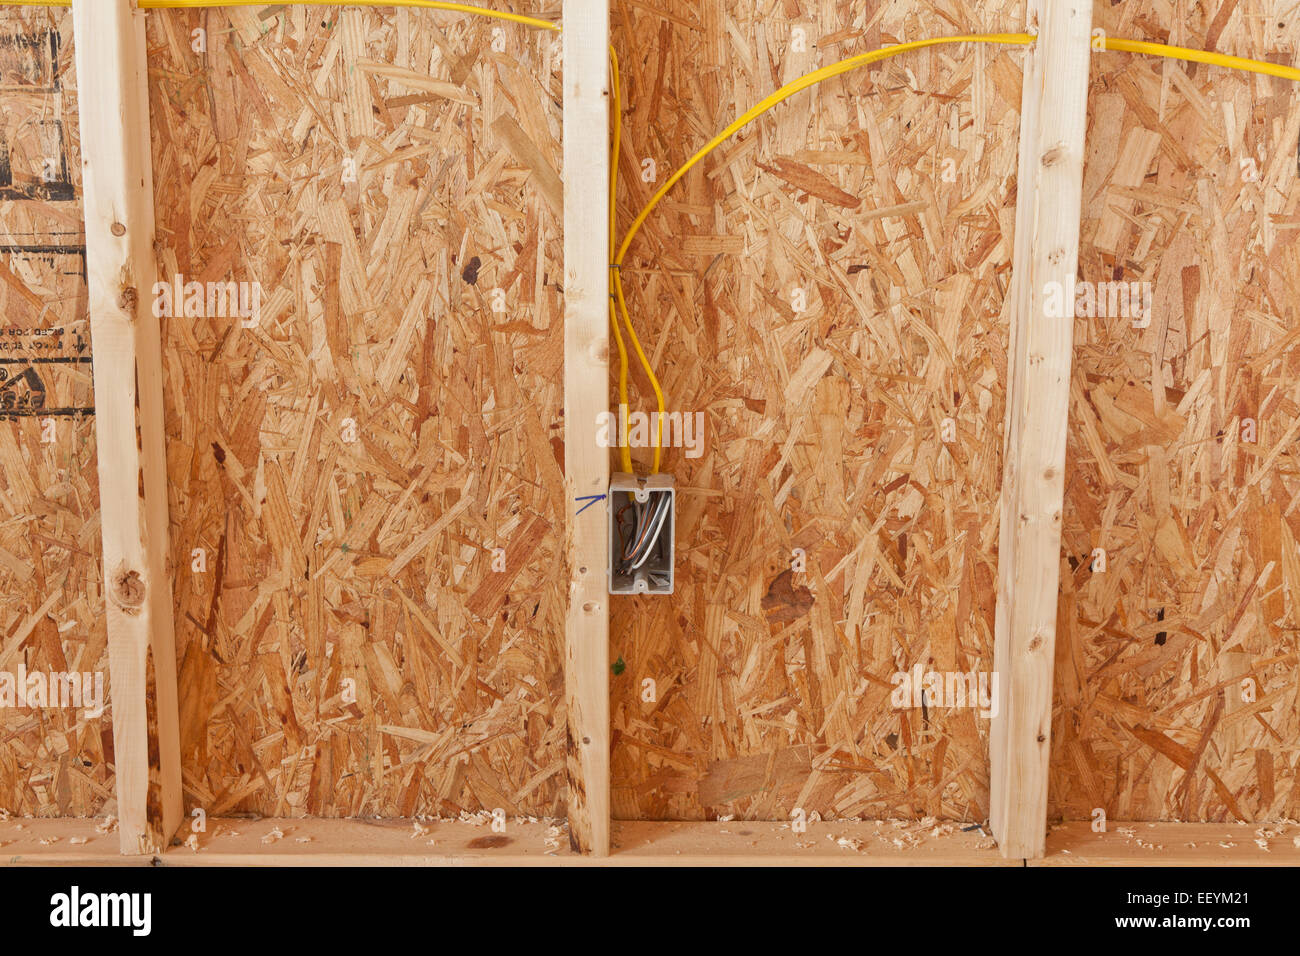 new electrical wiring in house stock photos new electrical wiring rh alamy com Residential Wiring New House Wiring Diagram